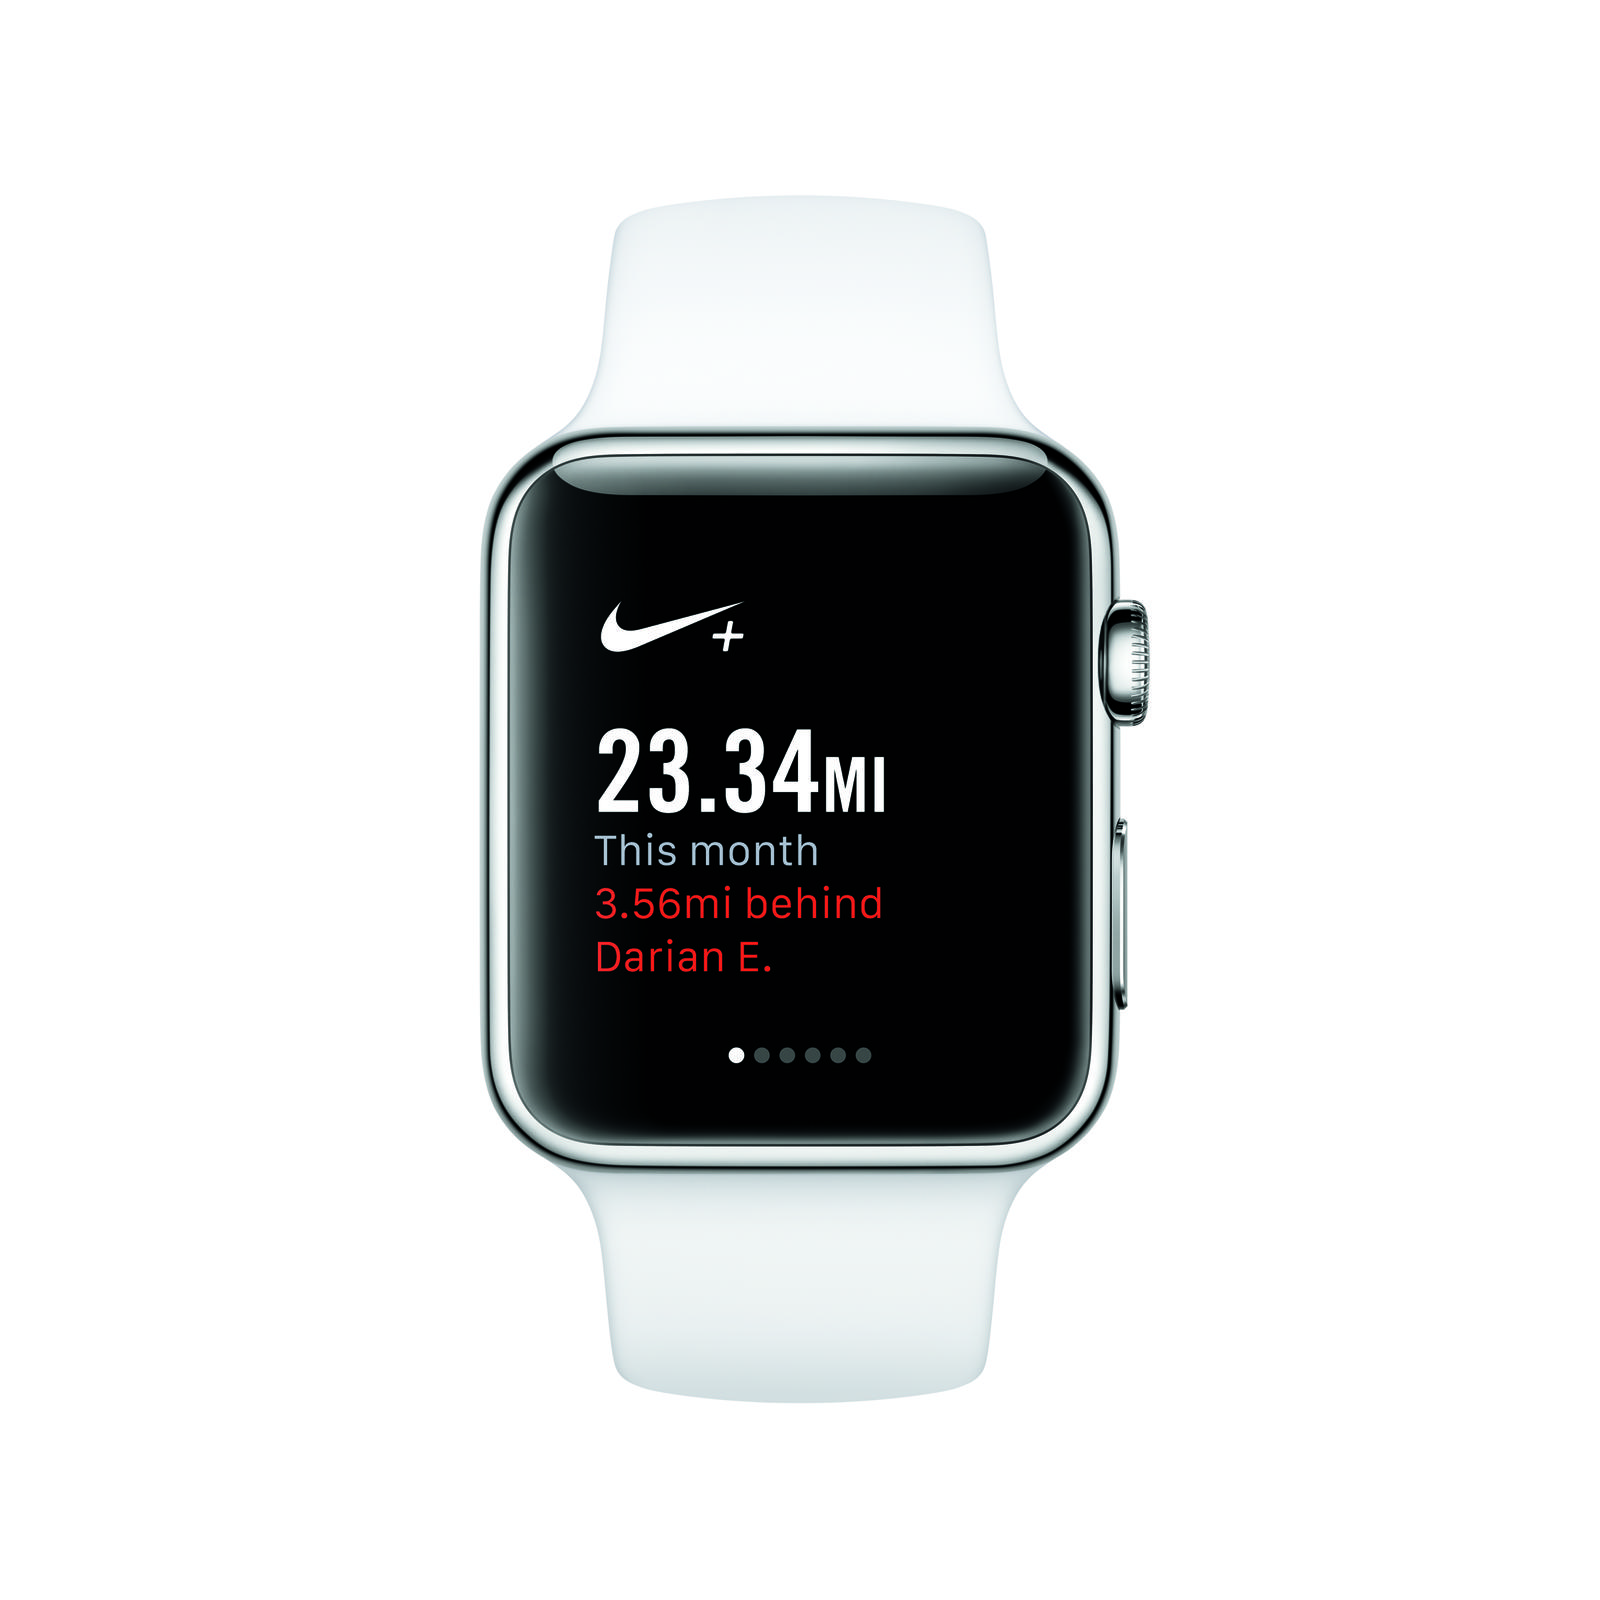 Nike+ Running on Apple Watch